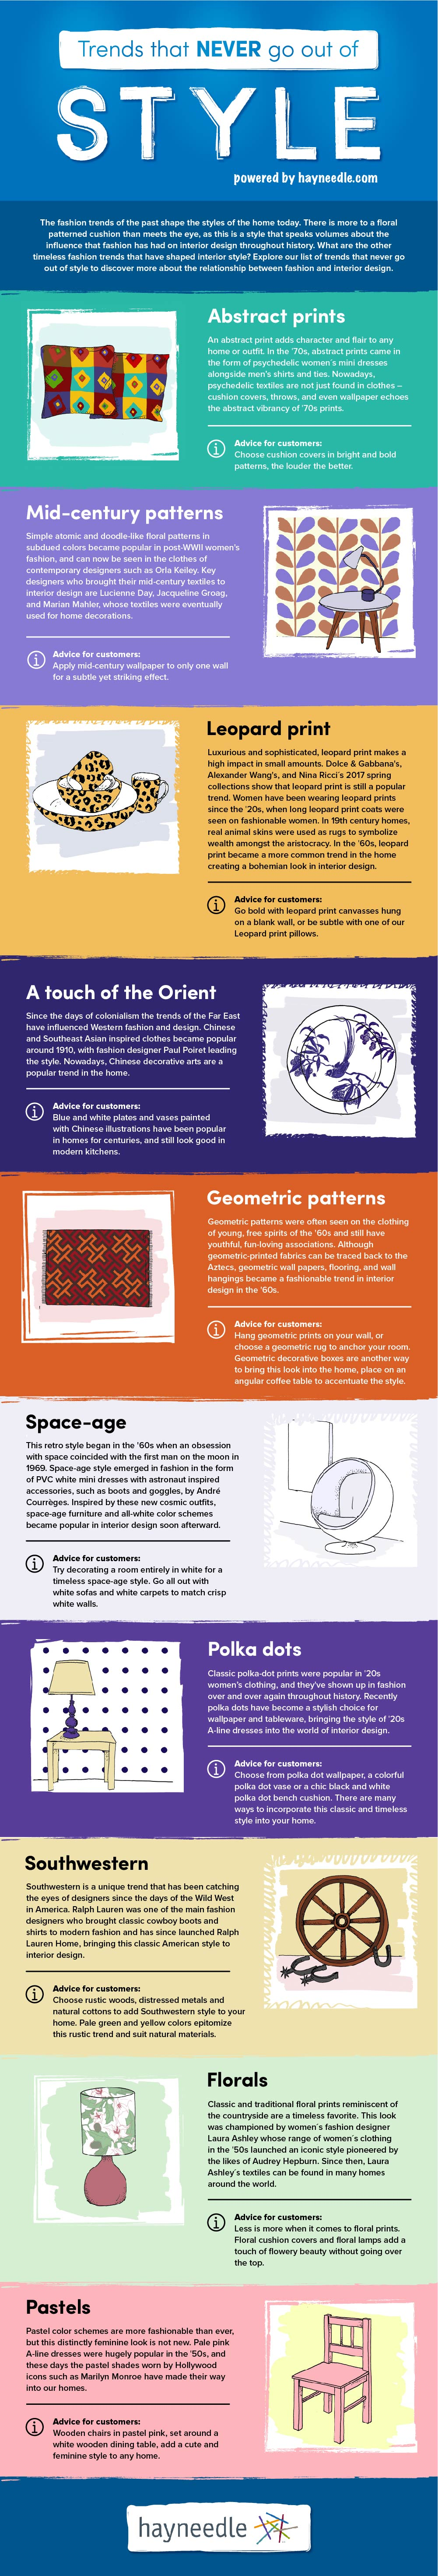 timeless trends infographic